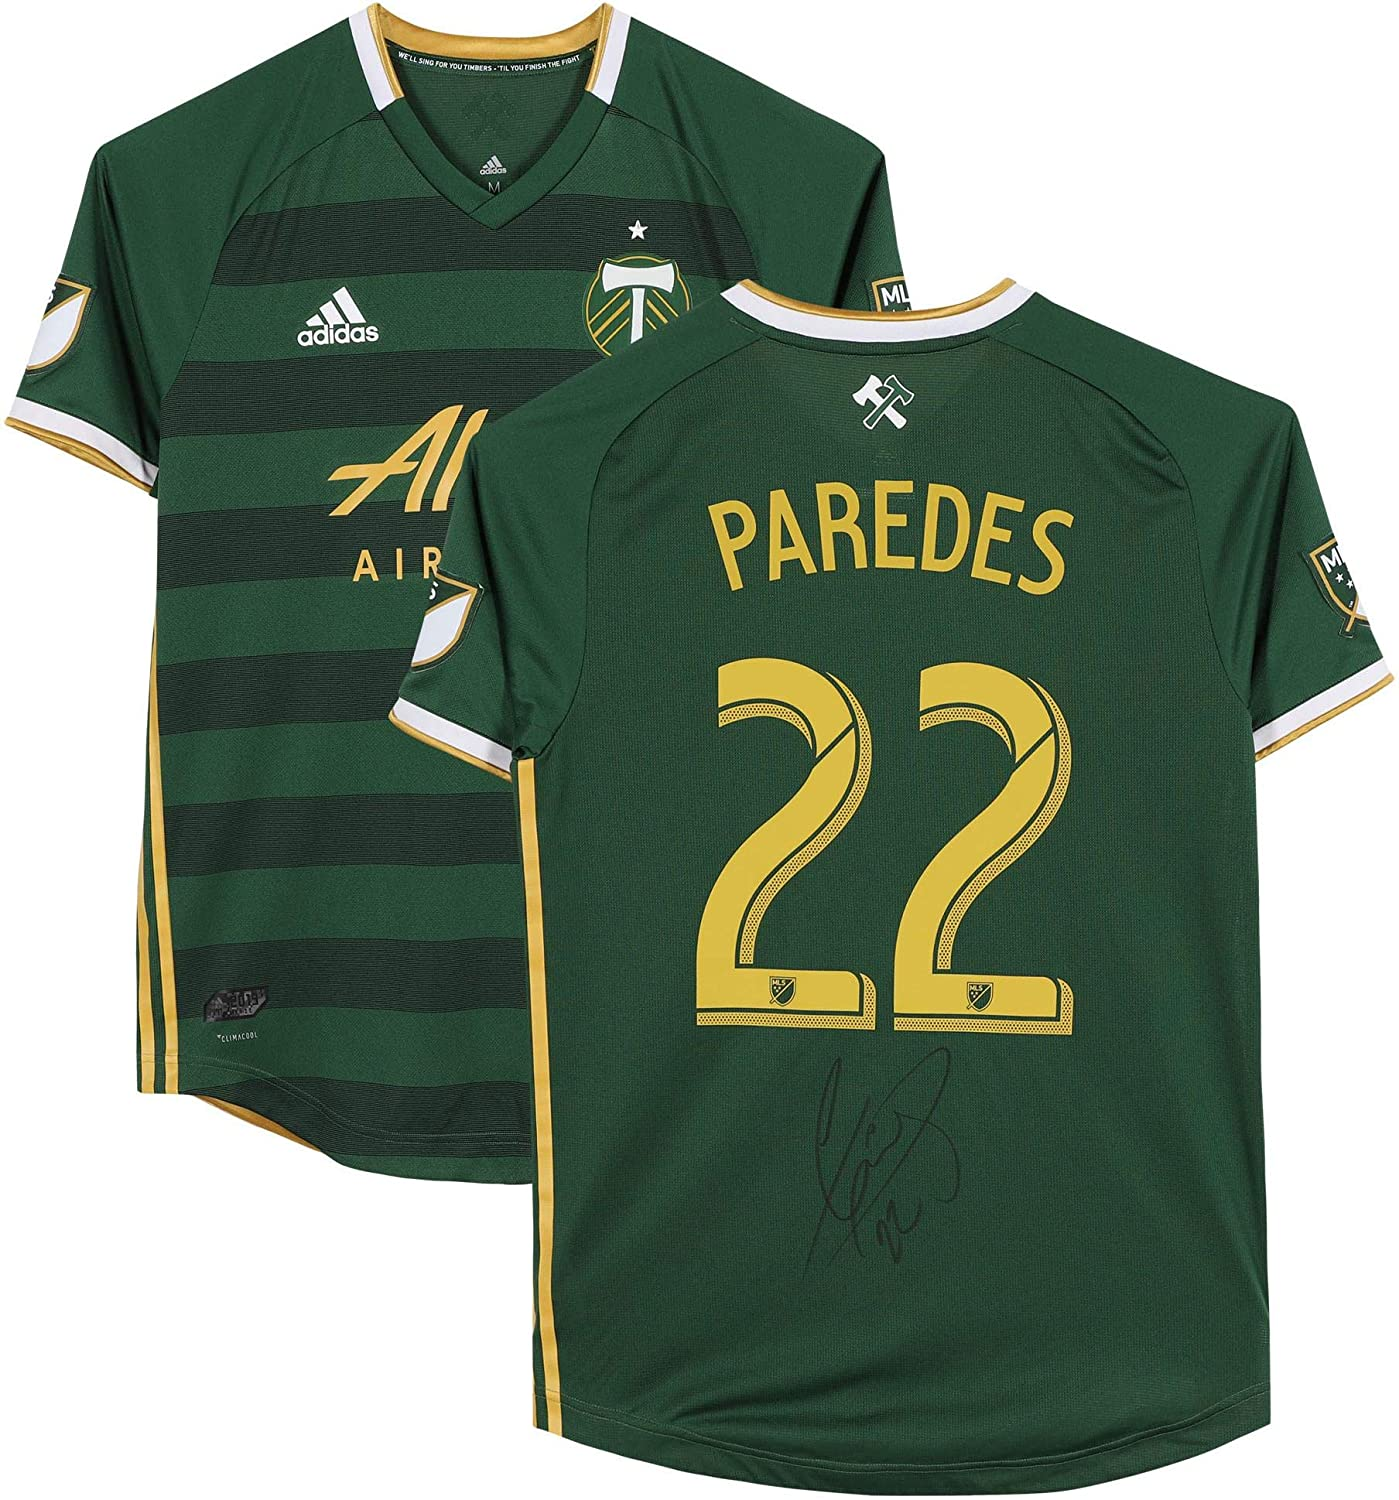 Cristhian Paredes Portland Timbers Autographed Match-Used #22 Green Jersey from the 2019 MLS Season - Fanatics Authentic Certified